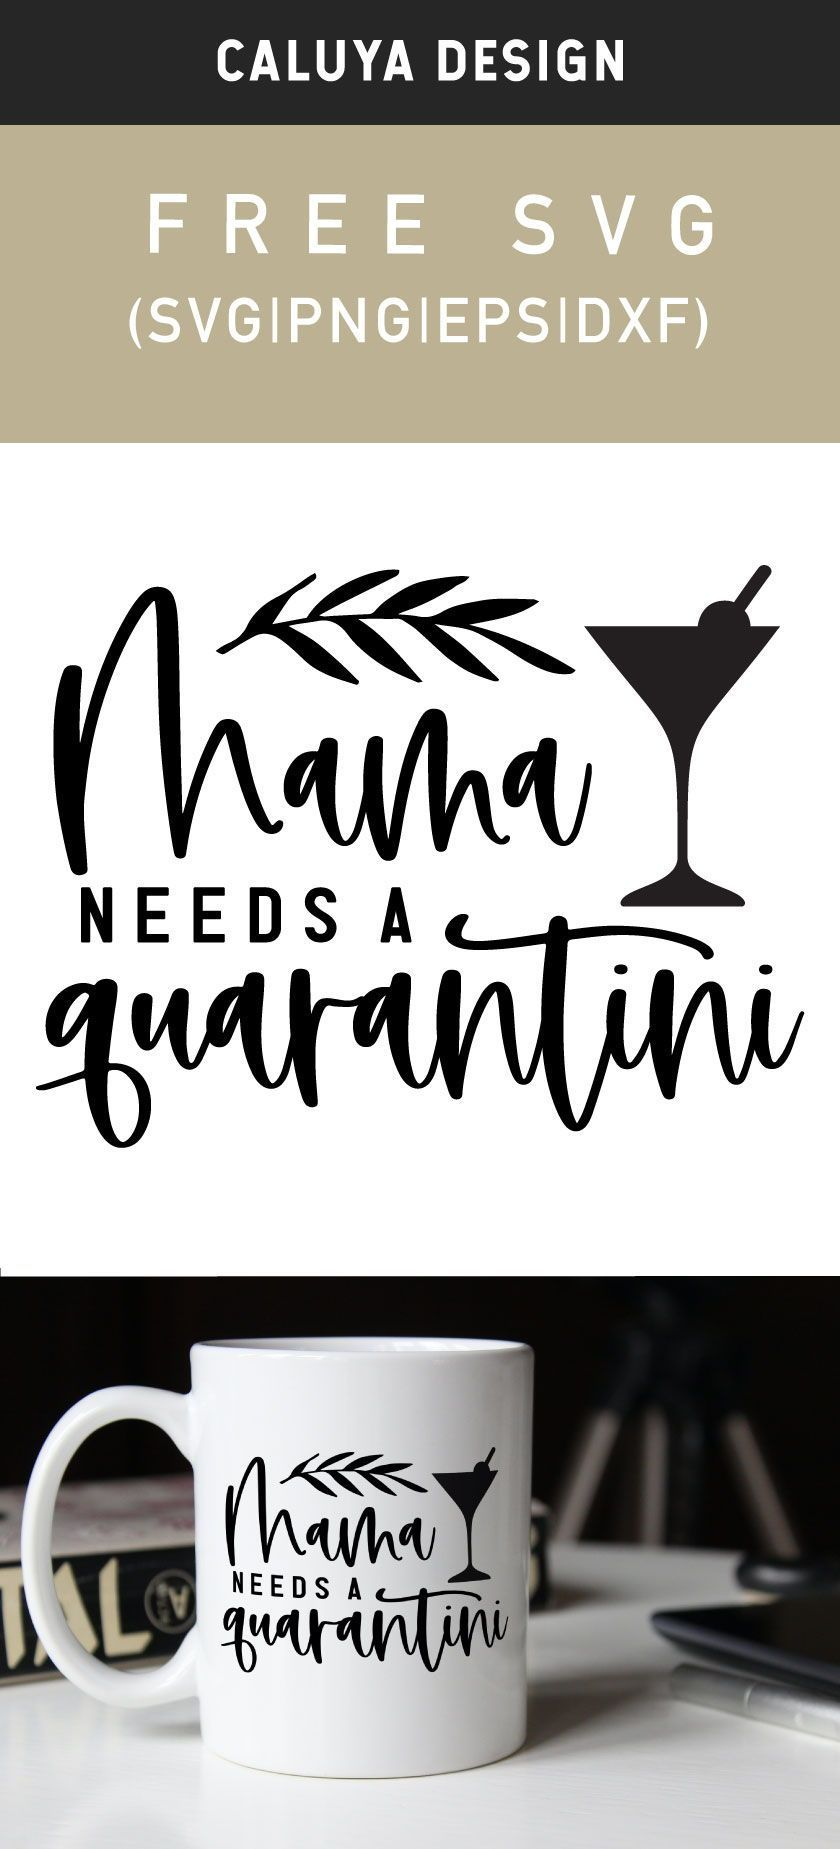 Free Mama Needs A Quarantini Svg Png Eps Dxf By Caluya Design In 2020 Silhouette Diy Free Printable Clip Art How To Make Planner